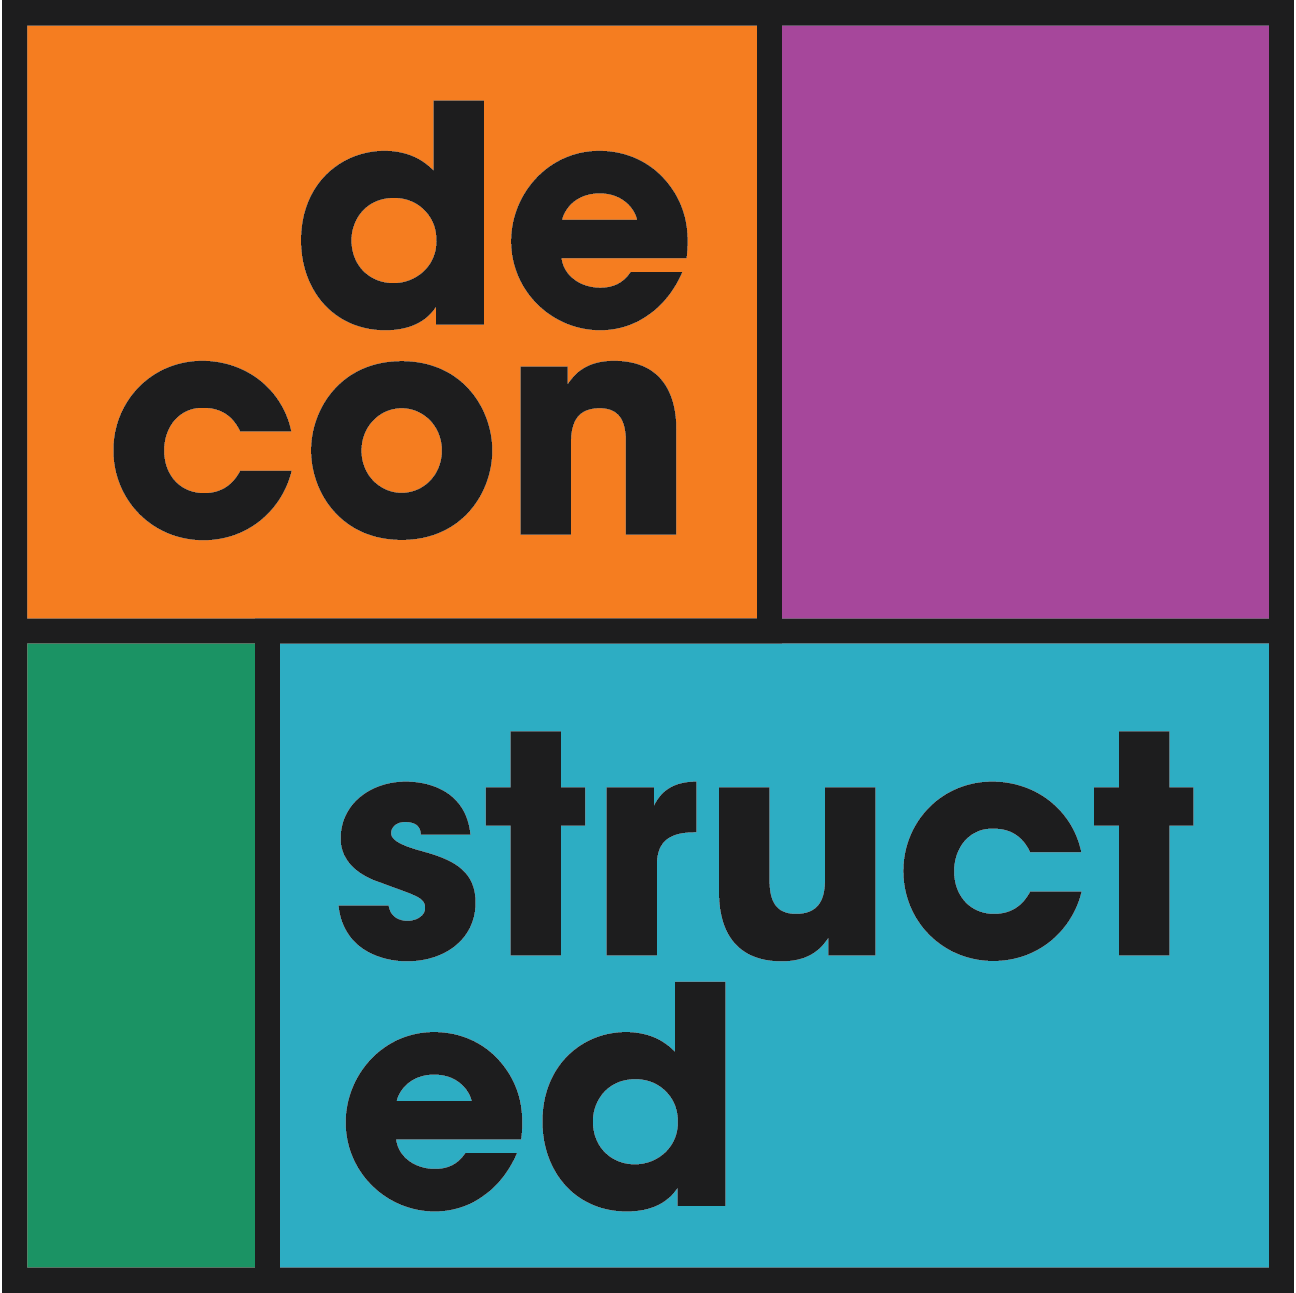 Deconstructed Podcast - Our project Possible Portland starts with our podcast which, in its first episodes speaks with a woman who has experienced ongoing houselessness and displacement as well as with someone who is working within the system and against its failings.